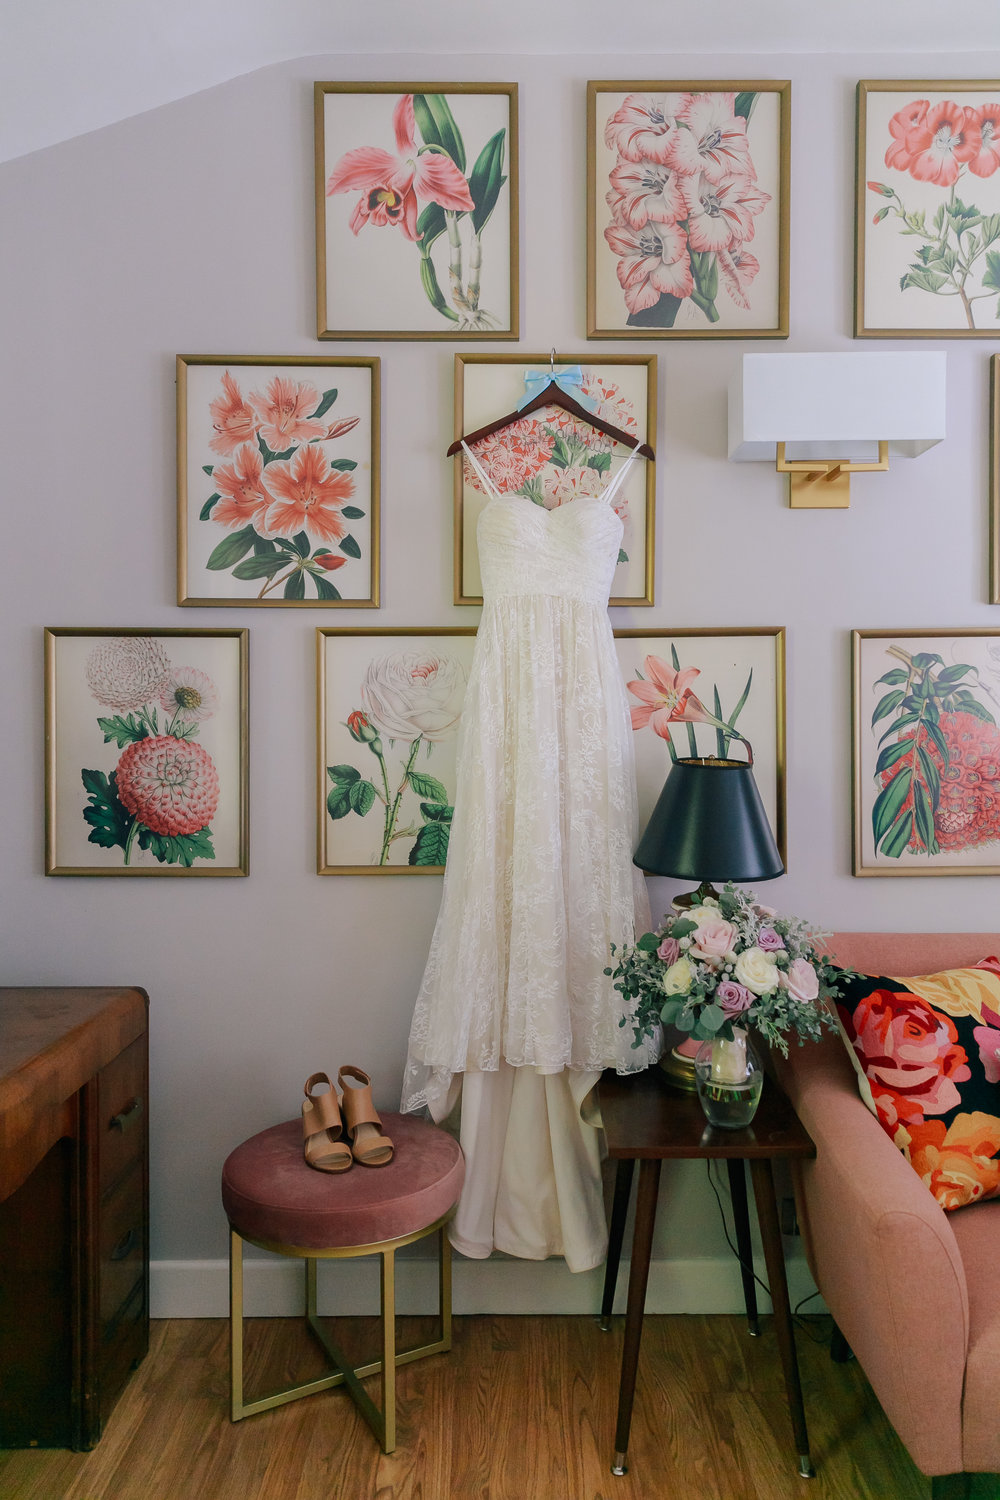 wedding dress in pink room.jpg